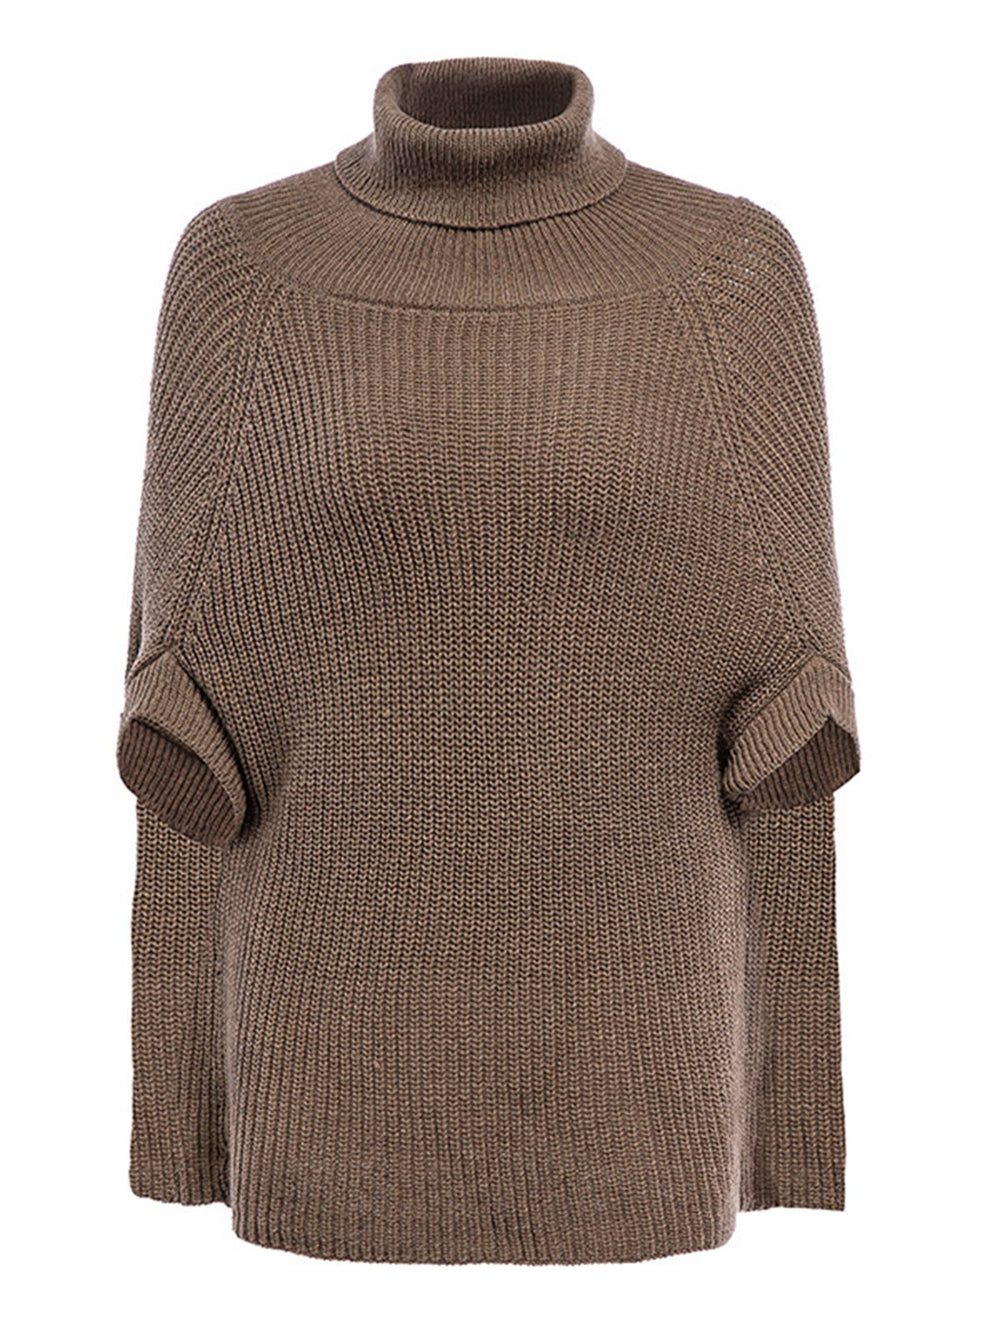 Fashion Batwing Wool Blend Loose Cloak Style Sweater